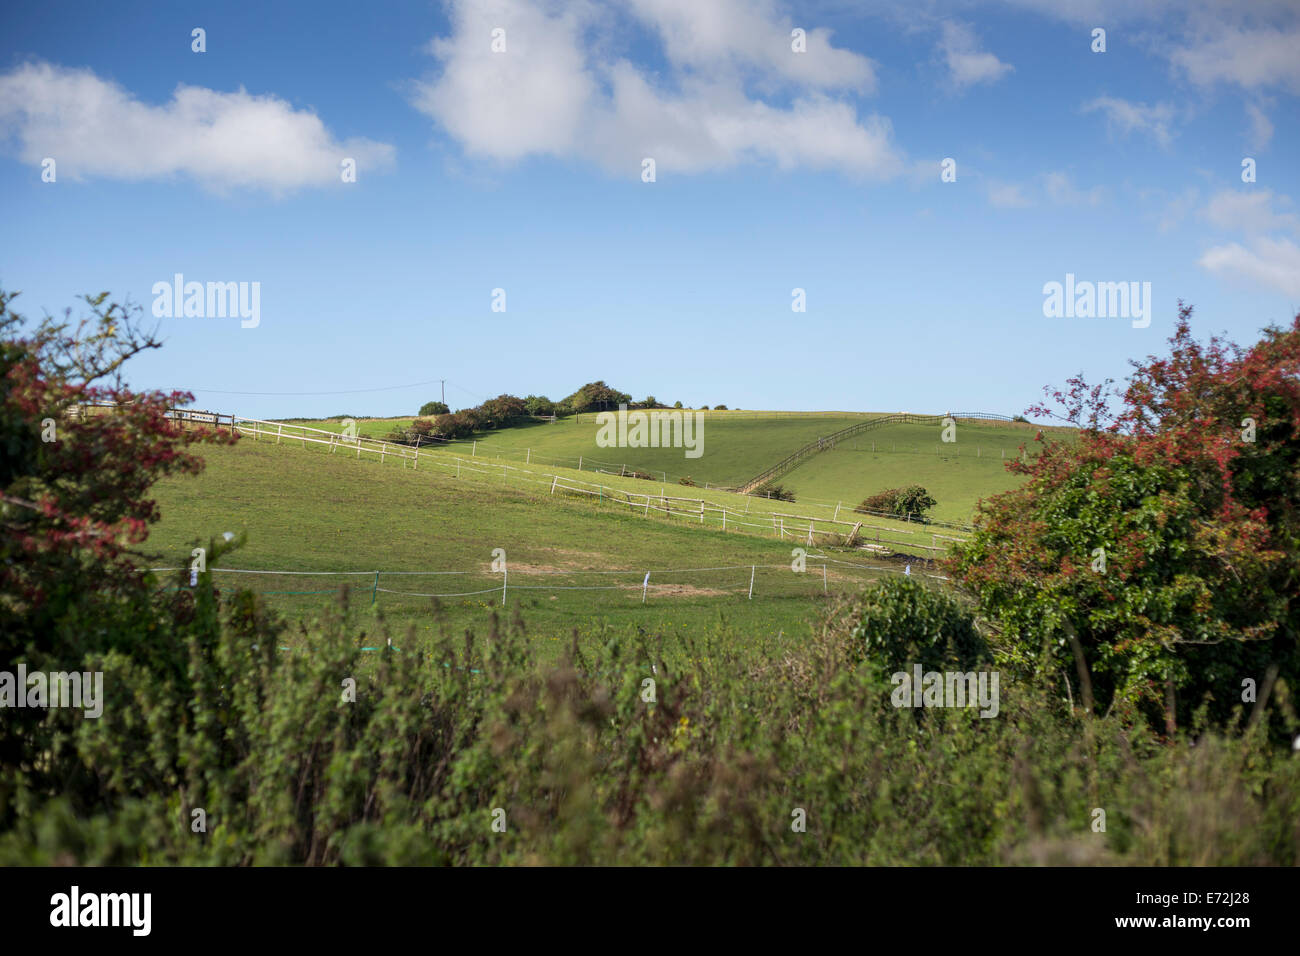 The rolling lush green countryside of Preston near Weymouth, Dorset UK Stock Photo